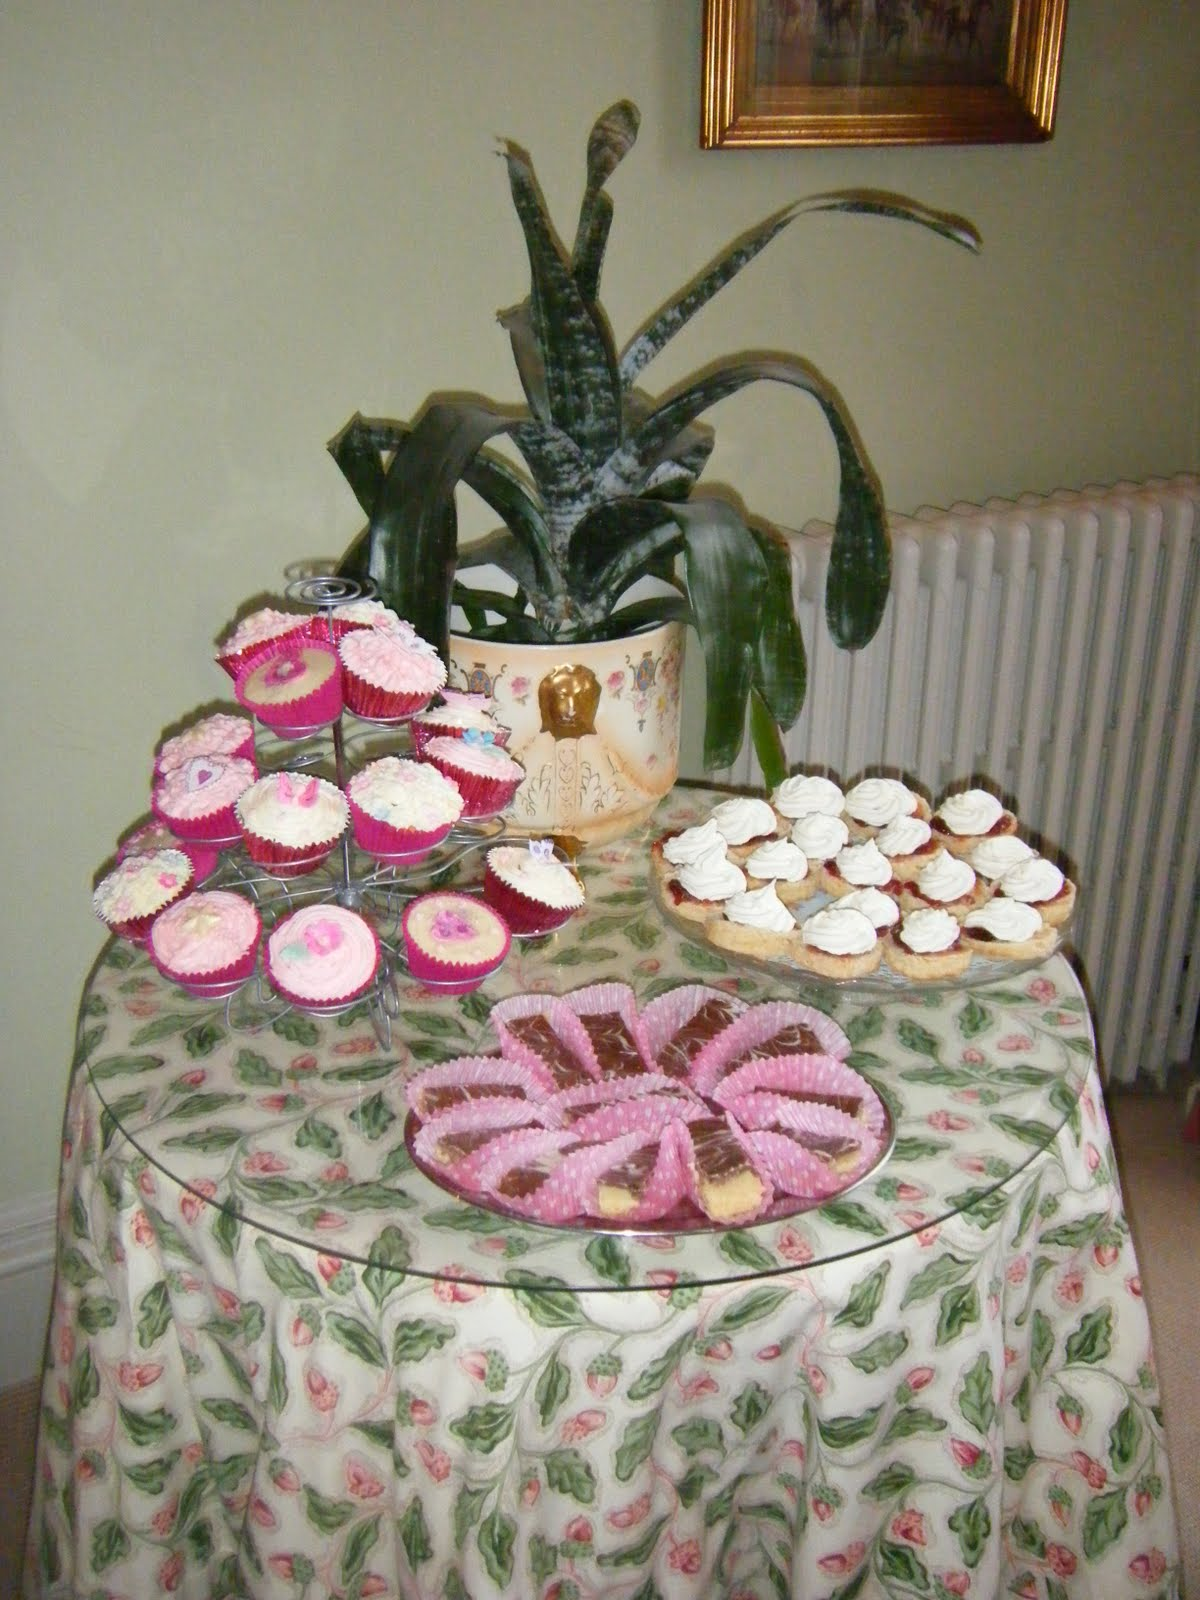 When we arrived the Hen party Naughty Cakes For Hen Party